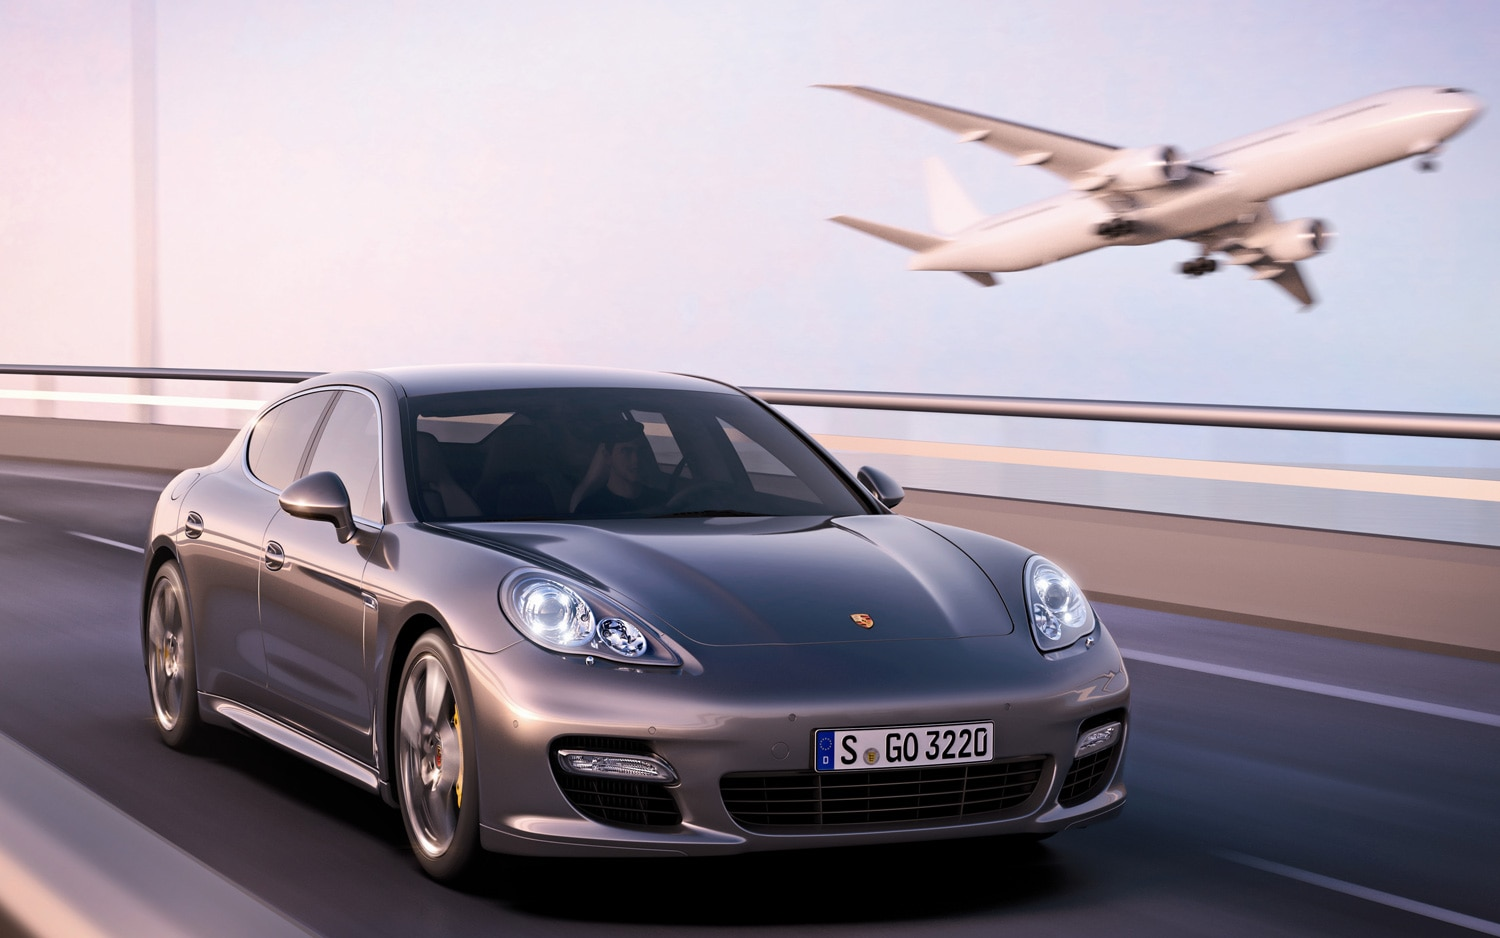 2012 Porsche Panamera Turbo S Front Three Quarter12